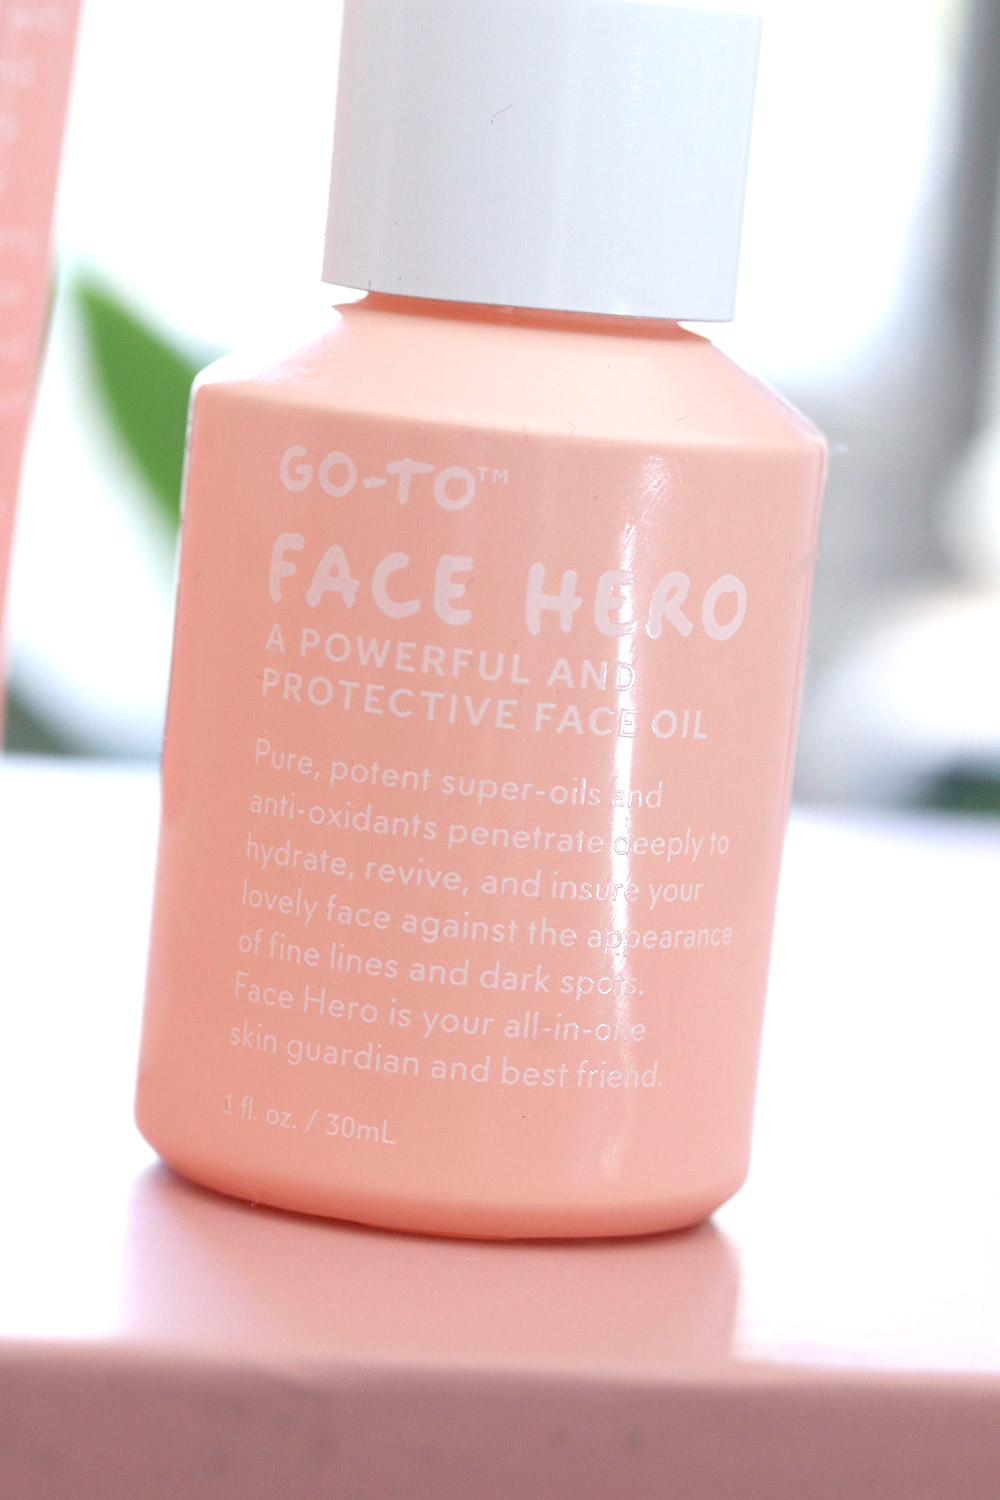 go to skin care face hero